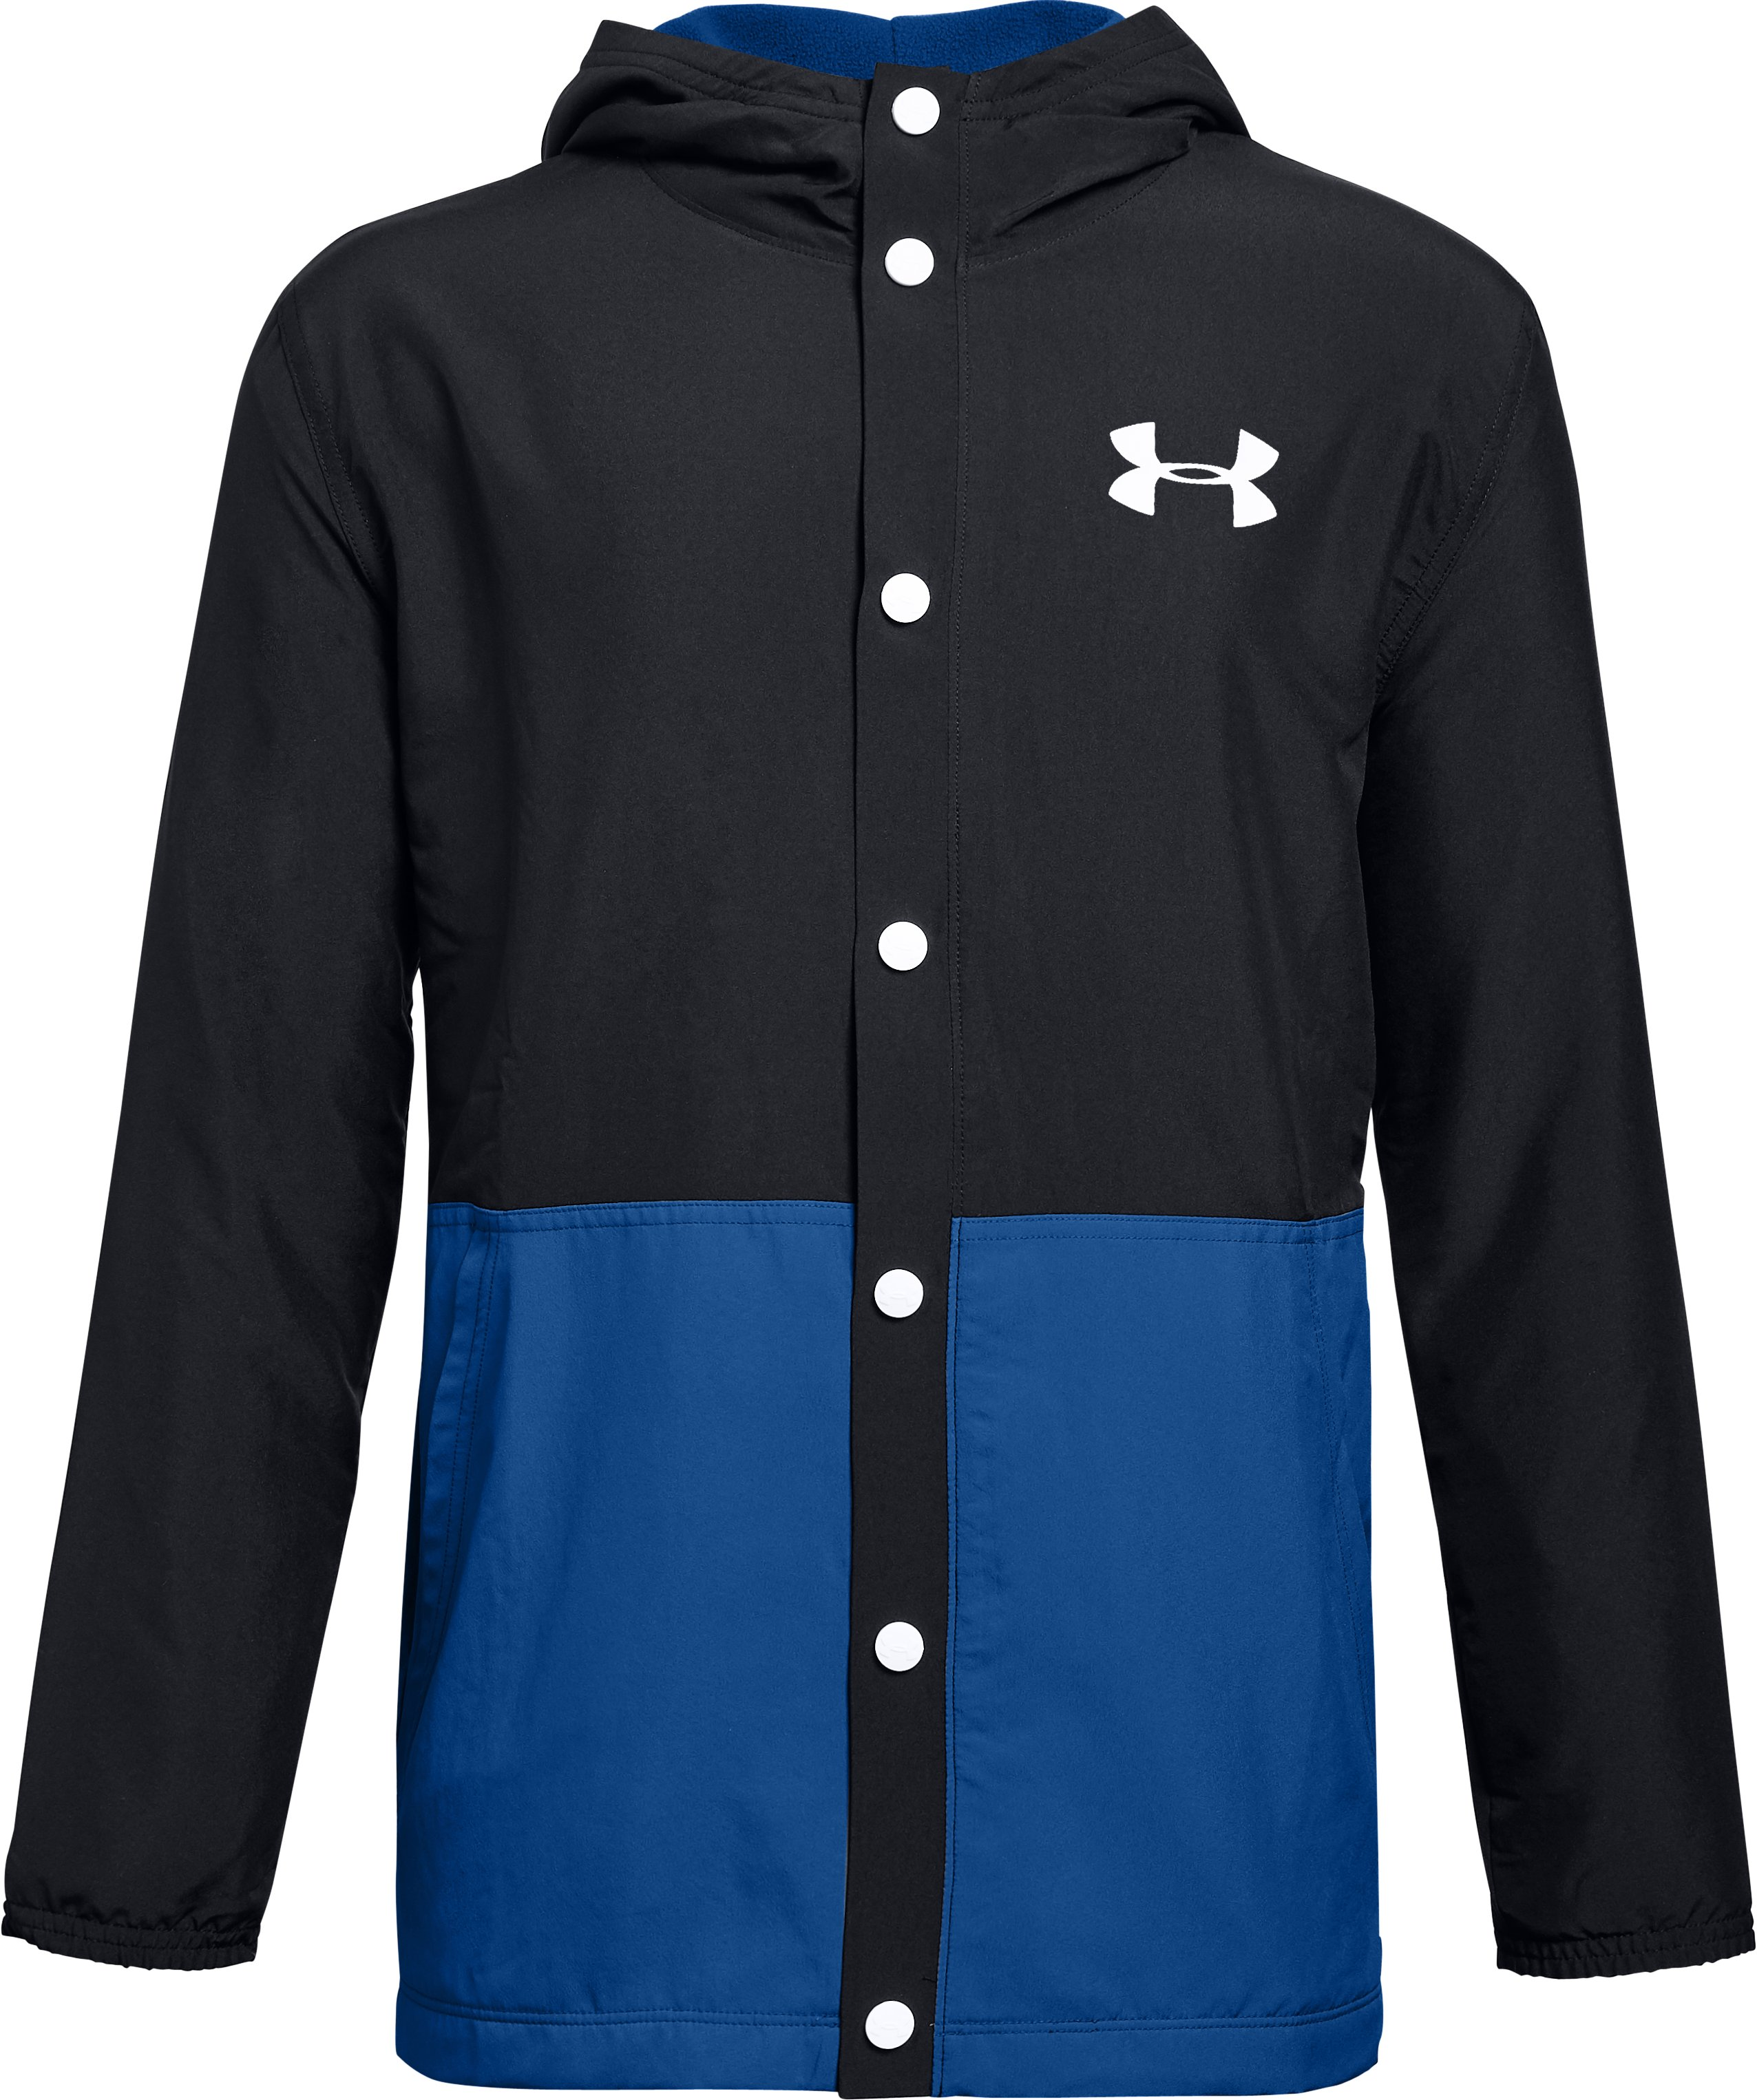 Boys' UA Phenom Coaches Jacket, Black